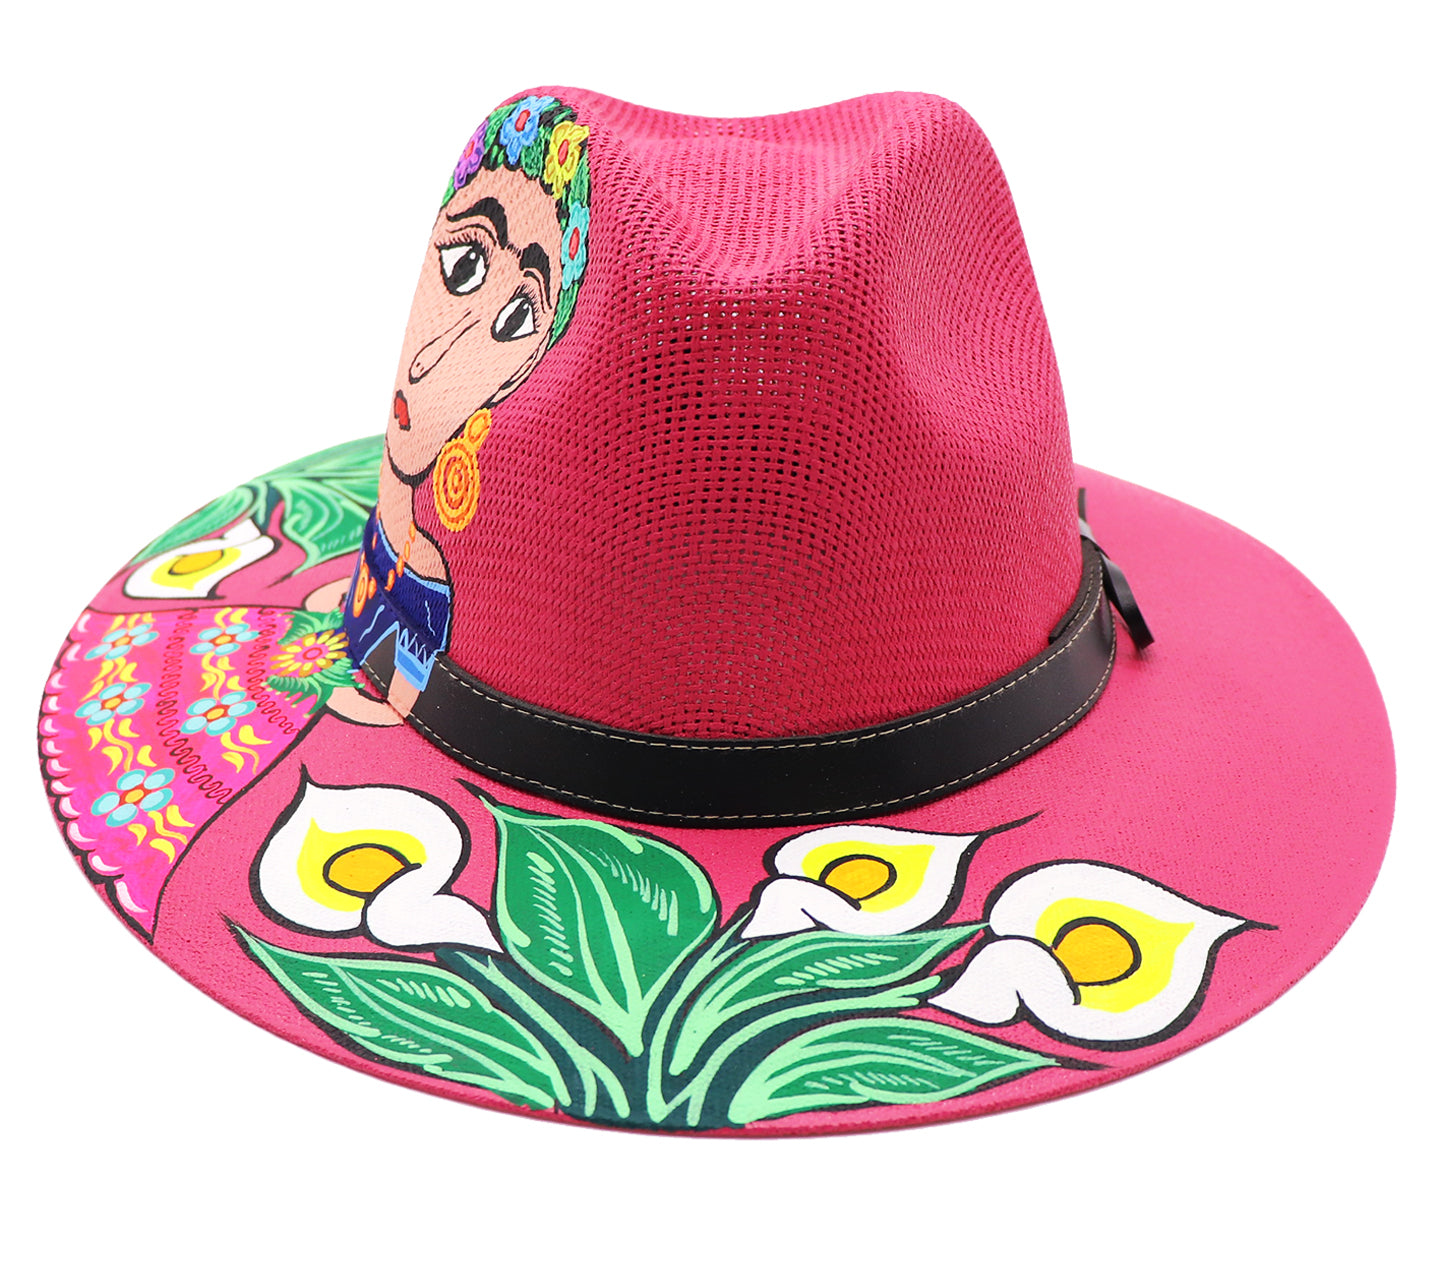 Calla lilies painted sombrero with Frida Kahlo a renowned Mexican artist. Beautiful dress worn by Kahlo a traditional Mexican colorful flower dress. Magenta sombrero with dark brown accessory belt strap. Sold by SDTrading Co.